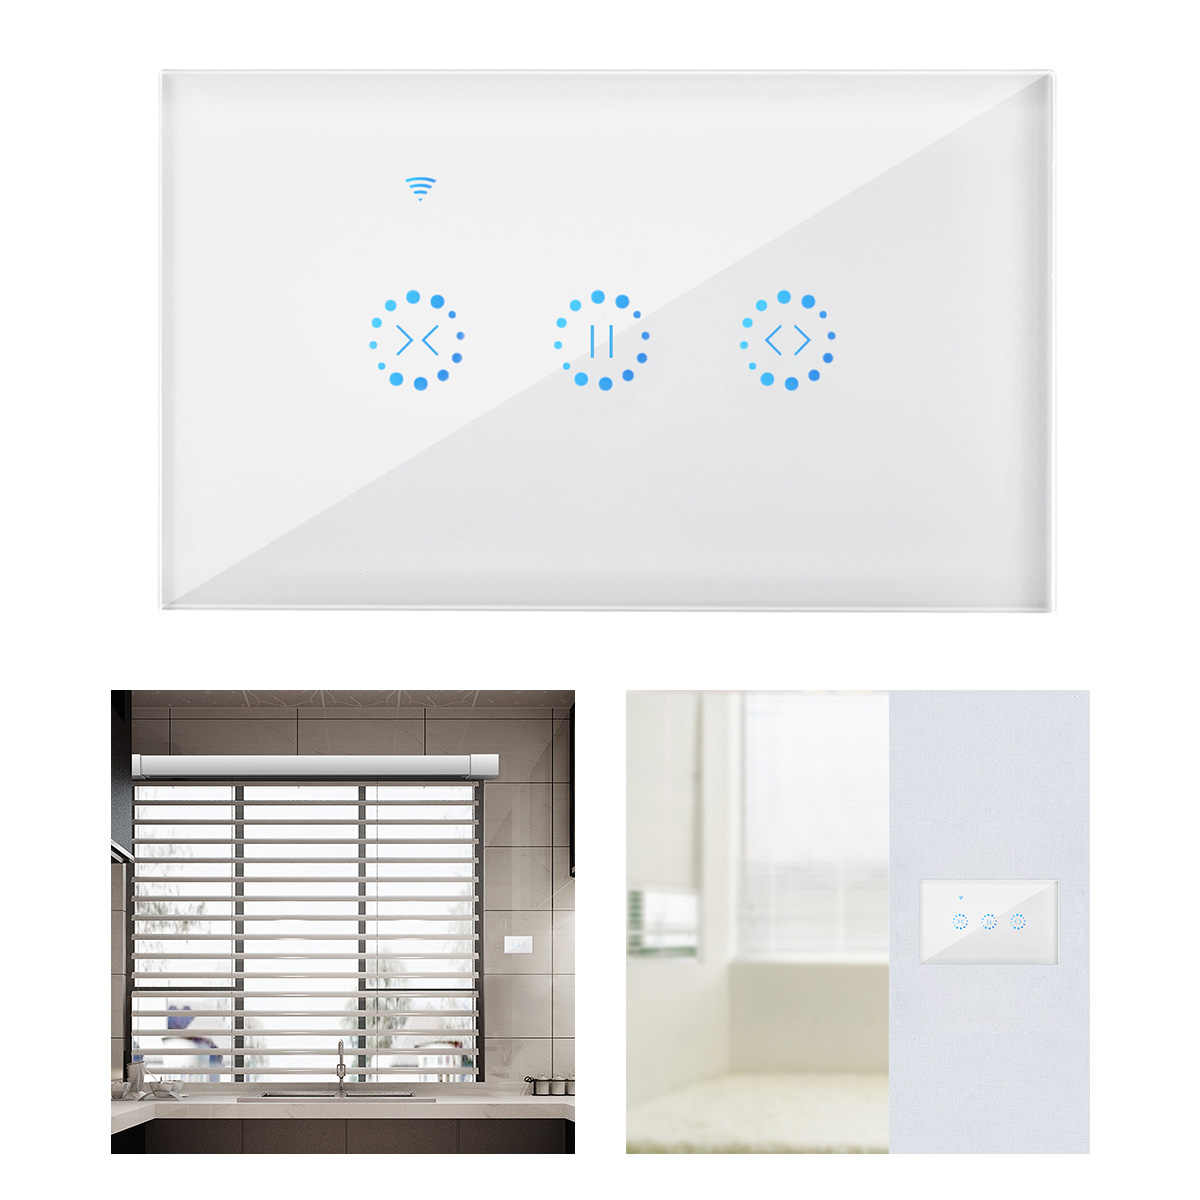 Ewelink smart curtain motor Electrical Blinds WiFi Switch Touch APP Voice  Control by Alexa Echo Google Home AC 110 V 220V EU/US